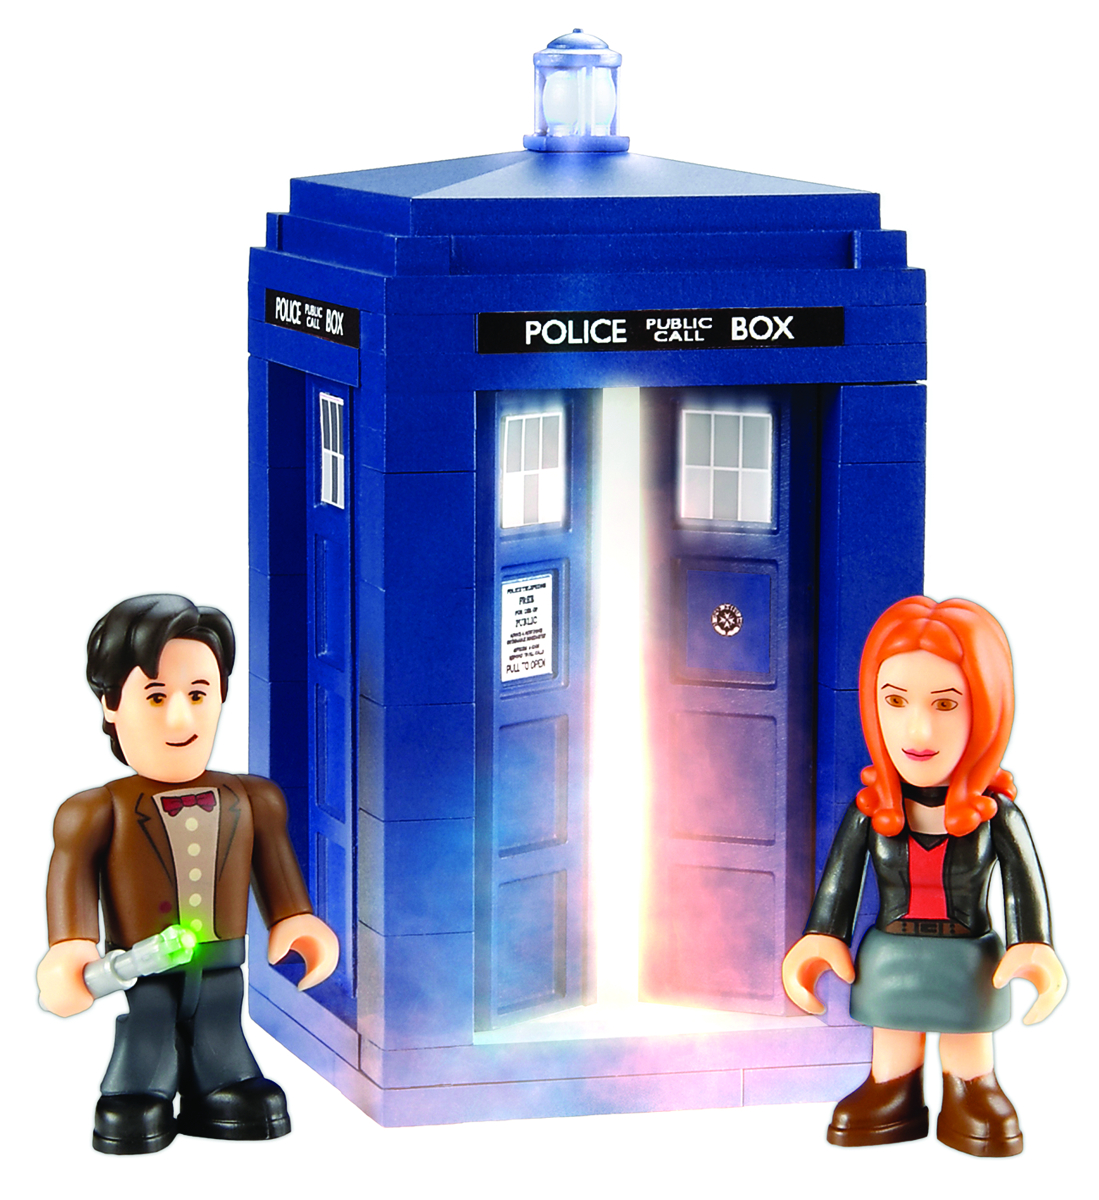 DOCTOR WHO CHAR BUILDING TARDIS MINI SET